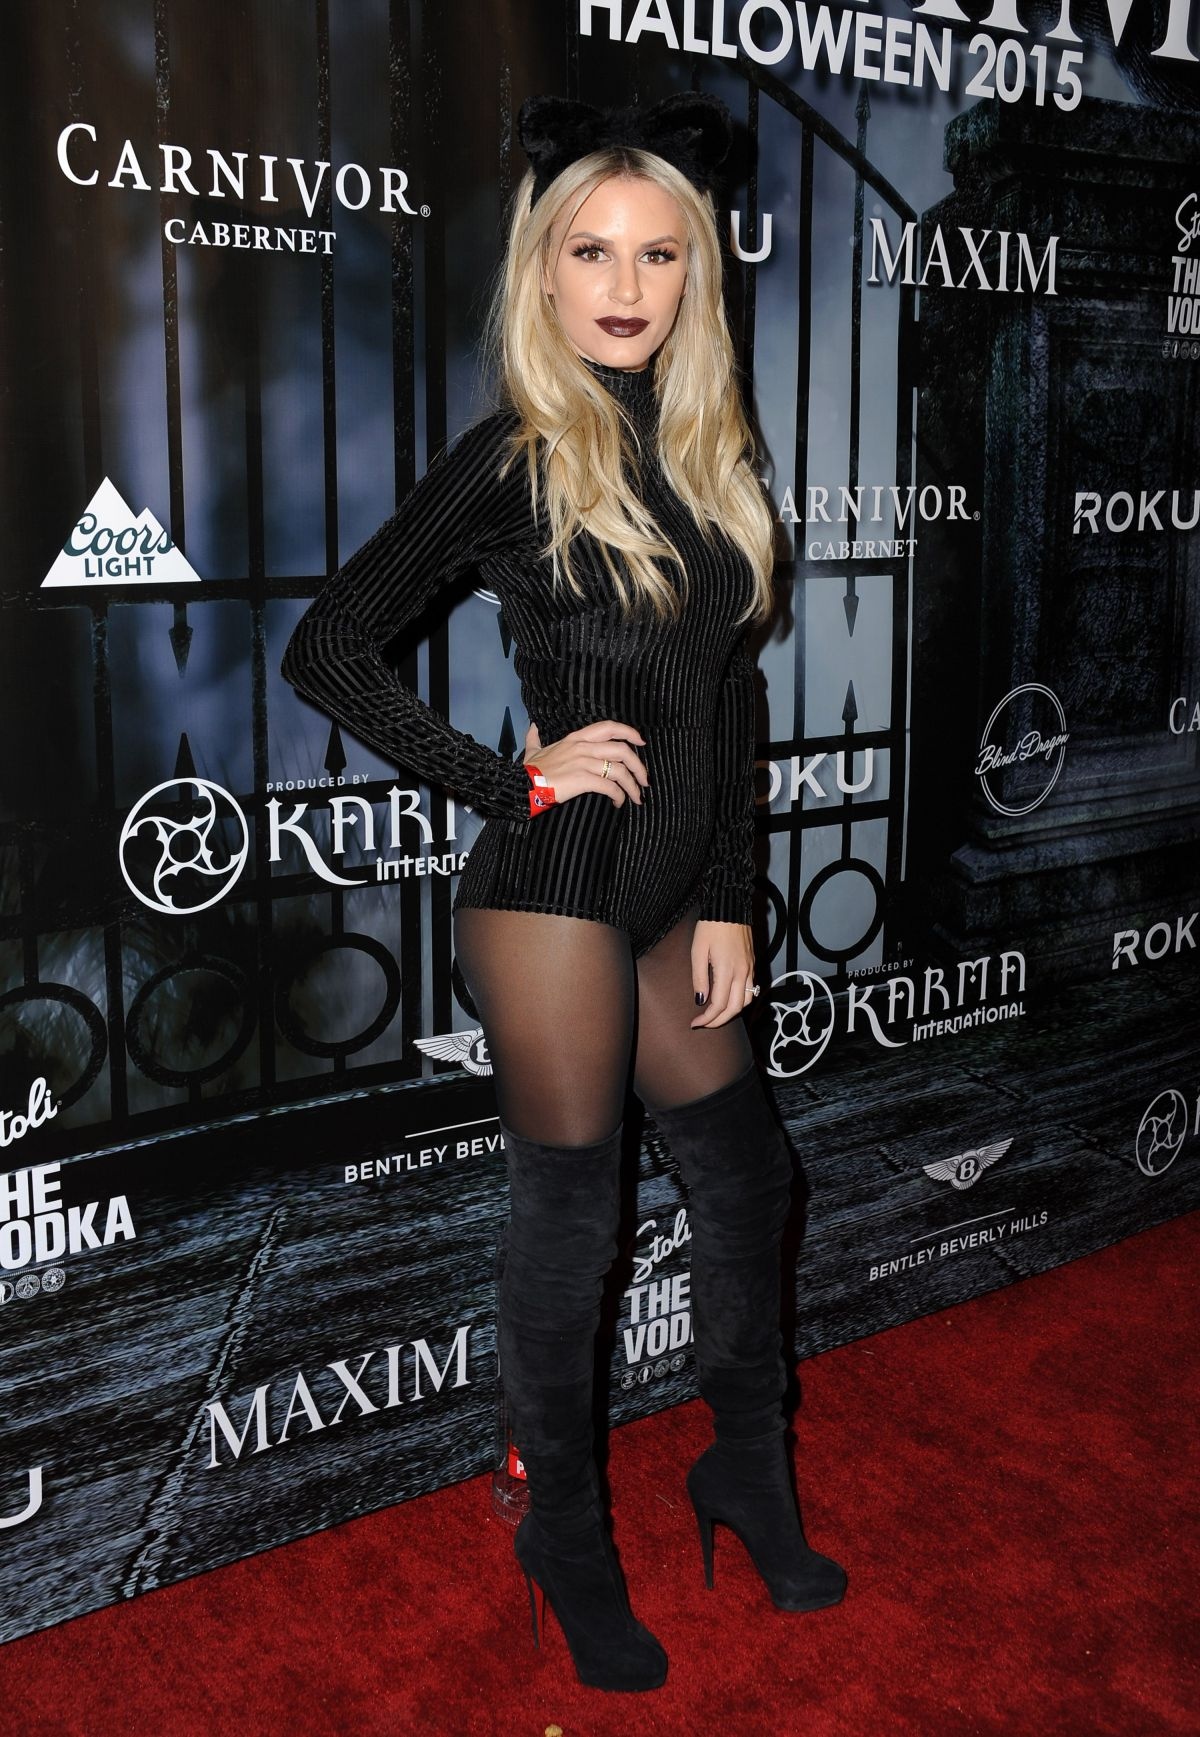 MORGAN STEWART at Maxim Magazine's Official Halloween Party in Beverly Hills 10/24/2015